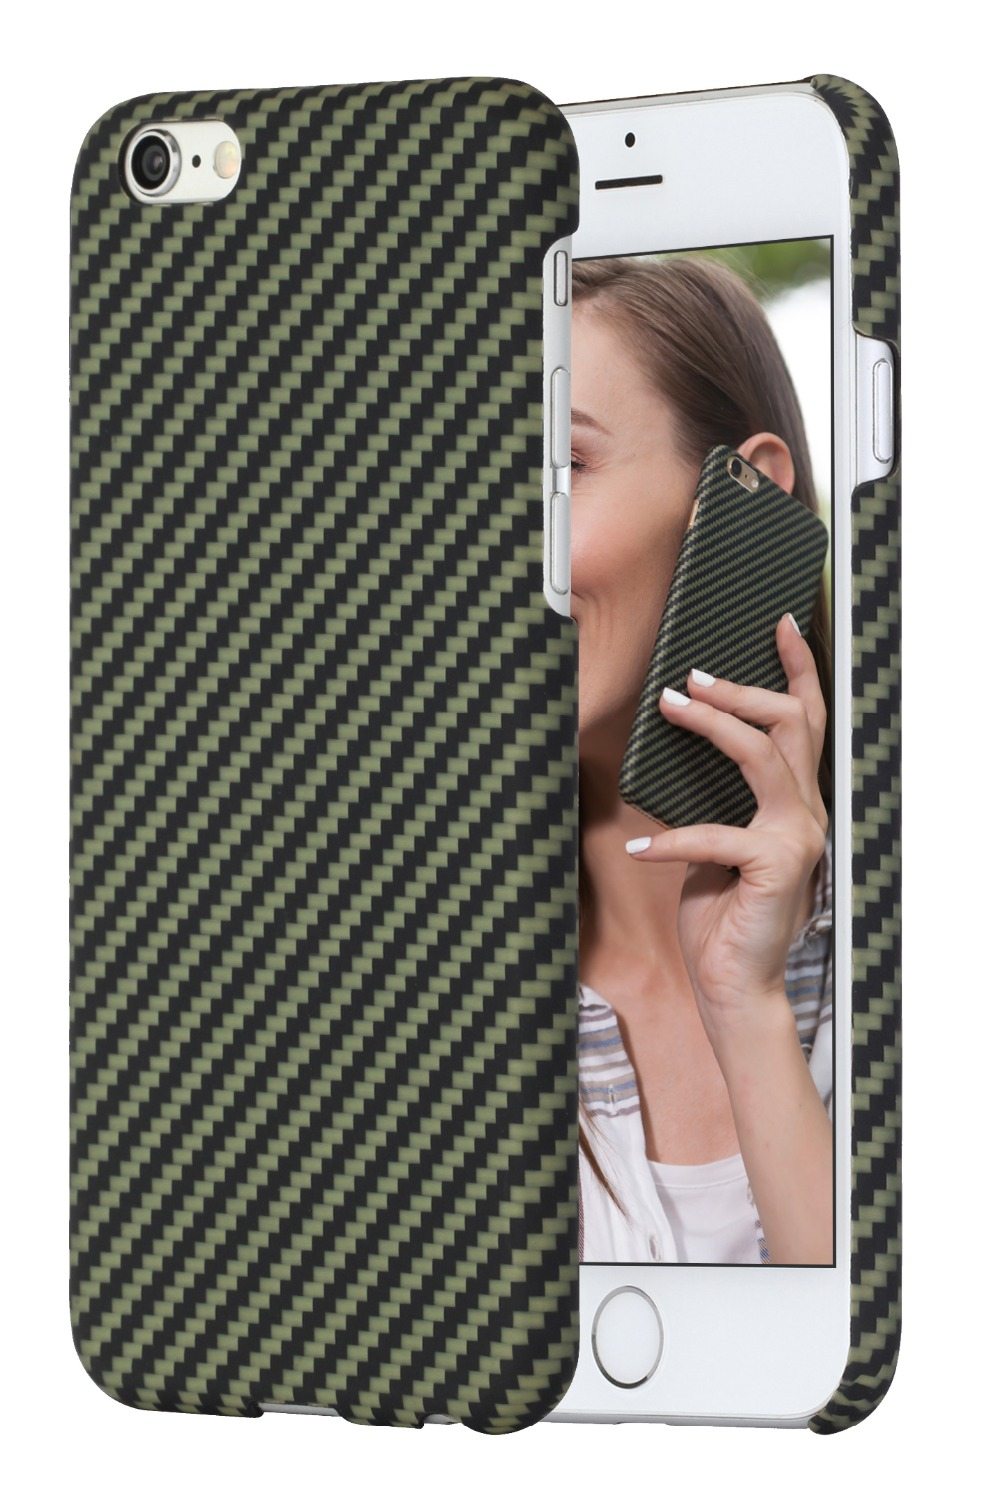 newest 17178 ce7bb US $76.0 |PITAKA Aramid(Bullet proof Material) Unisex Phone Cases For  iPhone 6 Plus/iPhone 6s Plus 360 Degree Protective With Free Gift-in Men's  ...